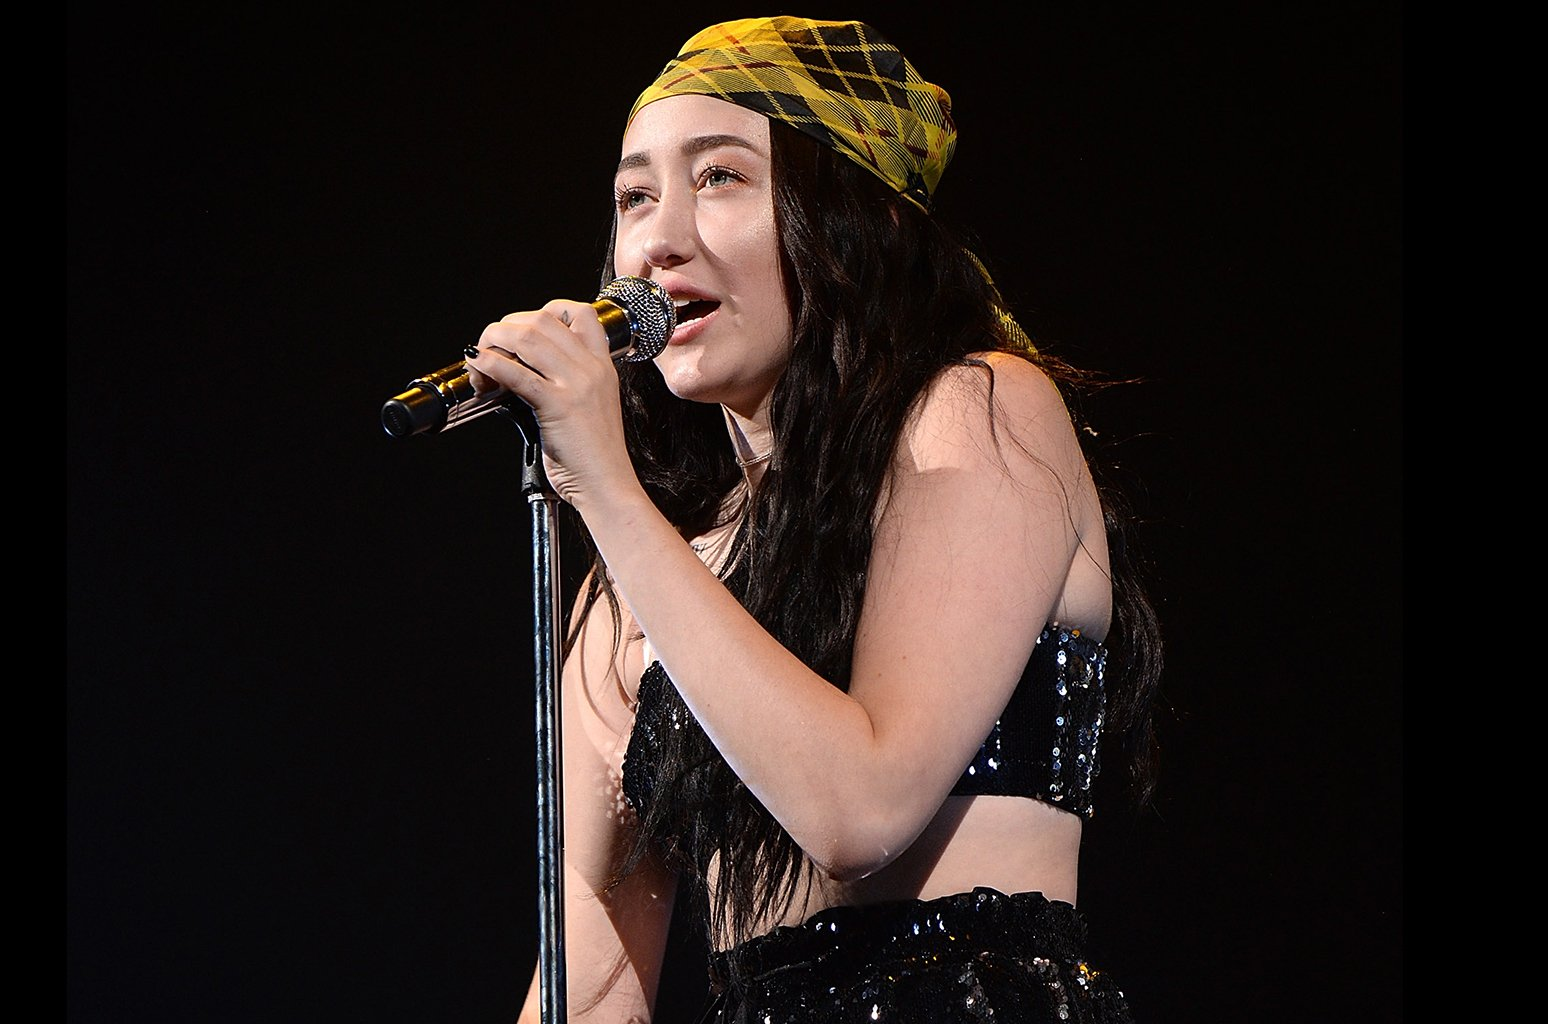 .@noahcyrus reveals dates for her first headlining tour https://t.co/AaI6xBnwbE https://t.co/NF9K8pyOaE